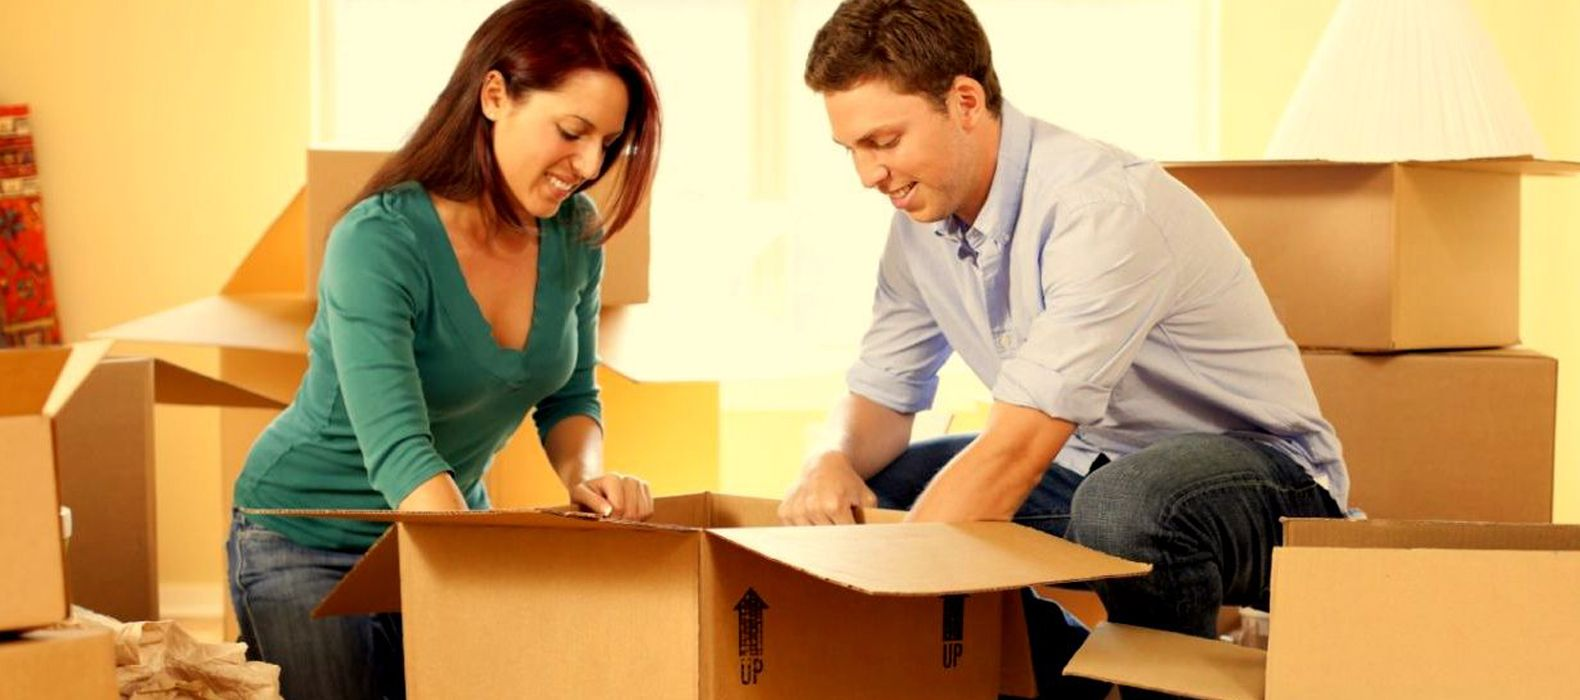 man and woman putting items in boxes